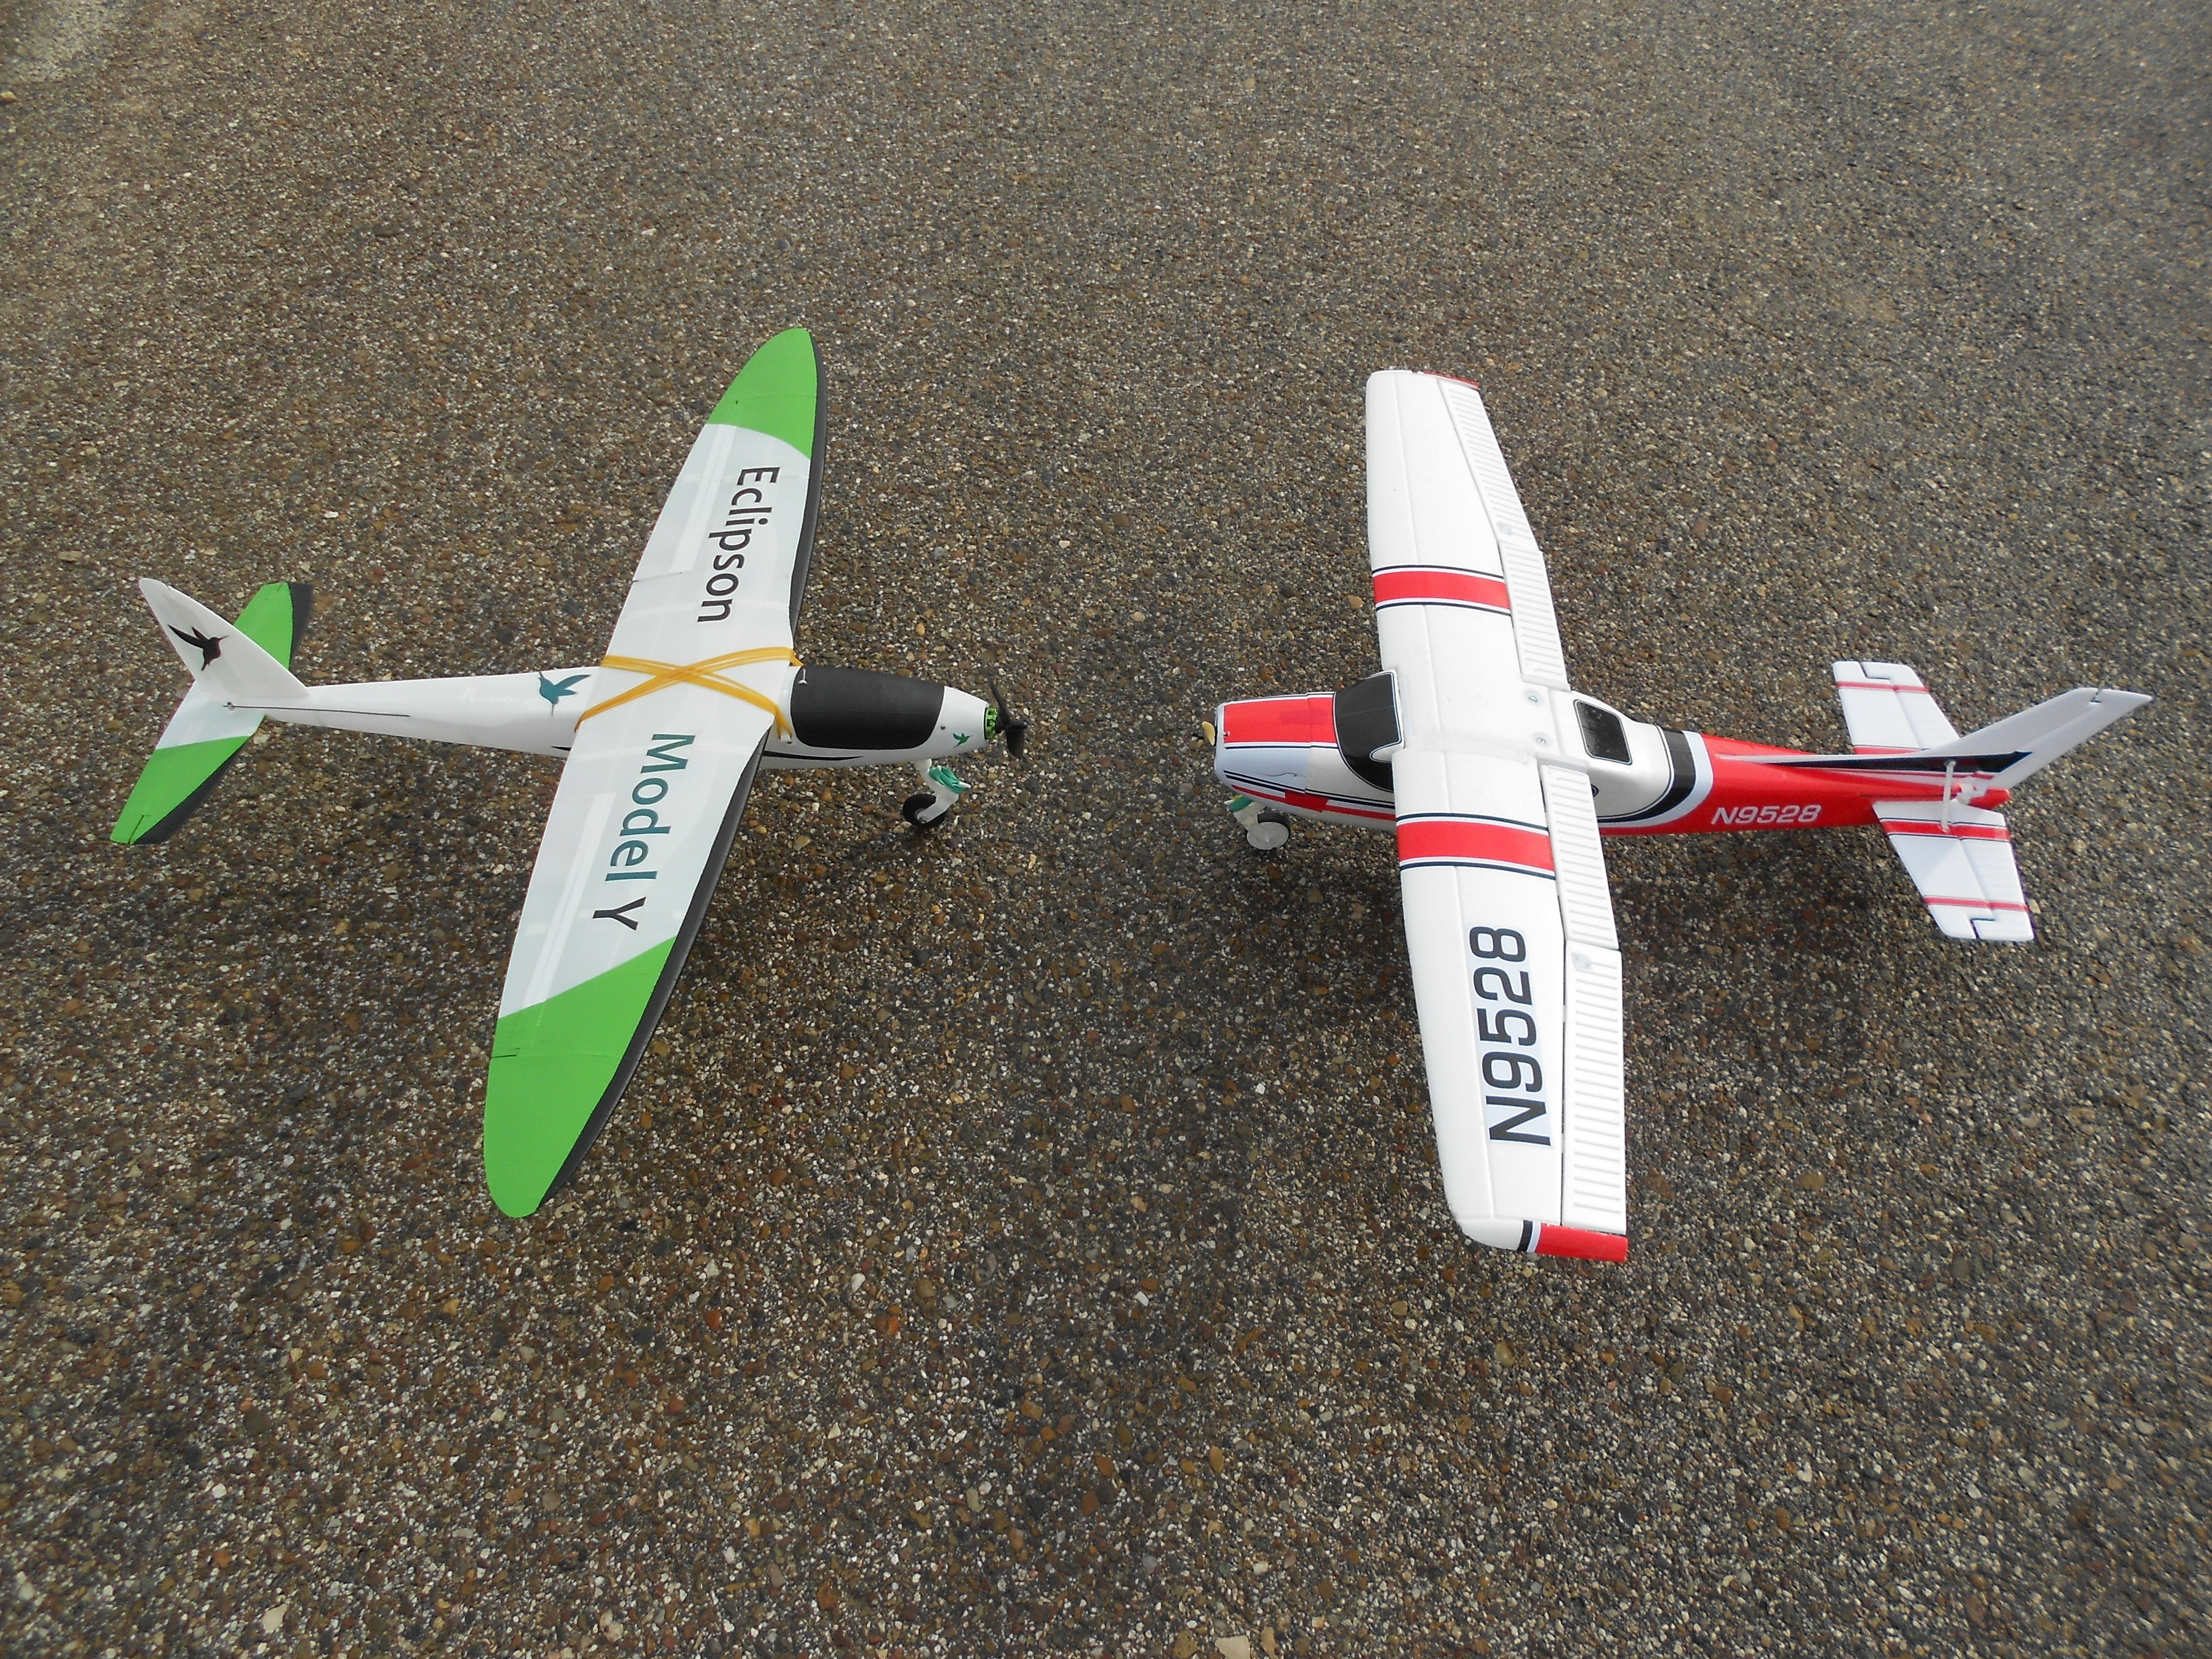 3D Printed RC airplane nose landing gear by Eclipson